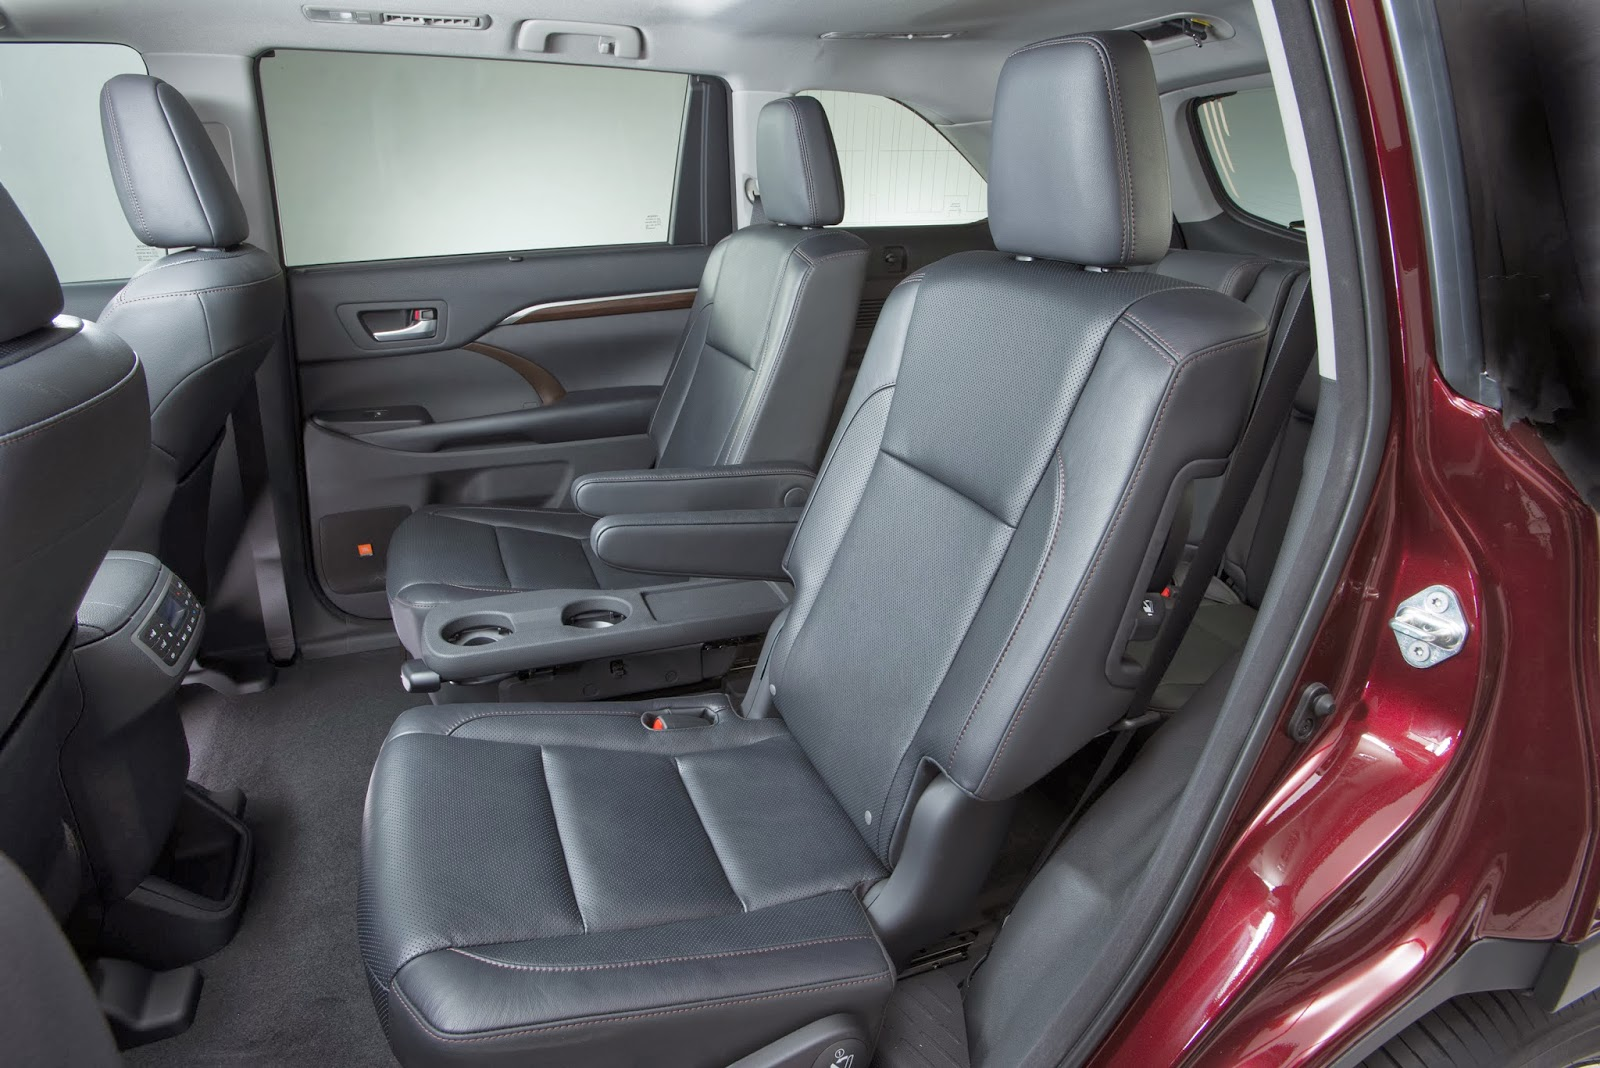 JeffCarscomYour Auto Industry Connection 2014 Toyota Highlander A Stylish And Roomy People Mover